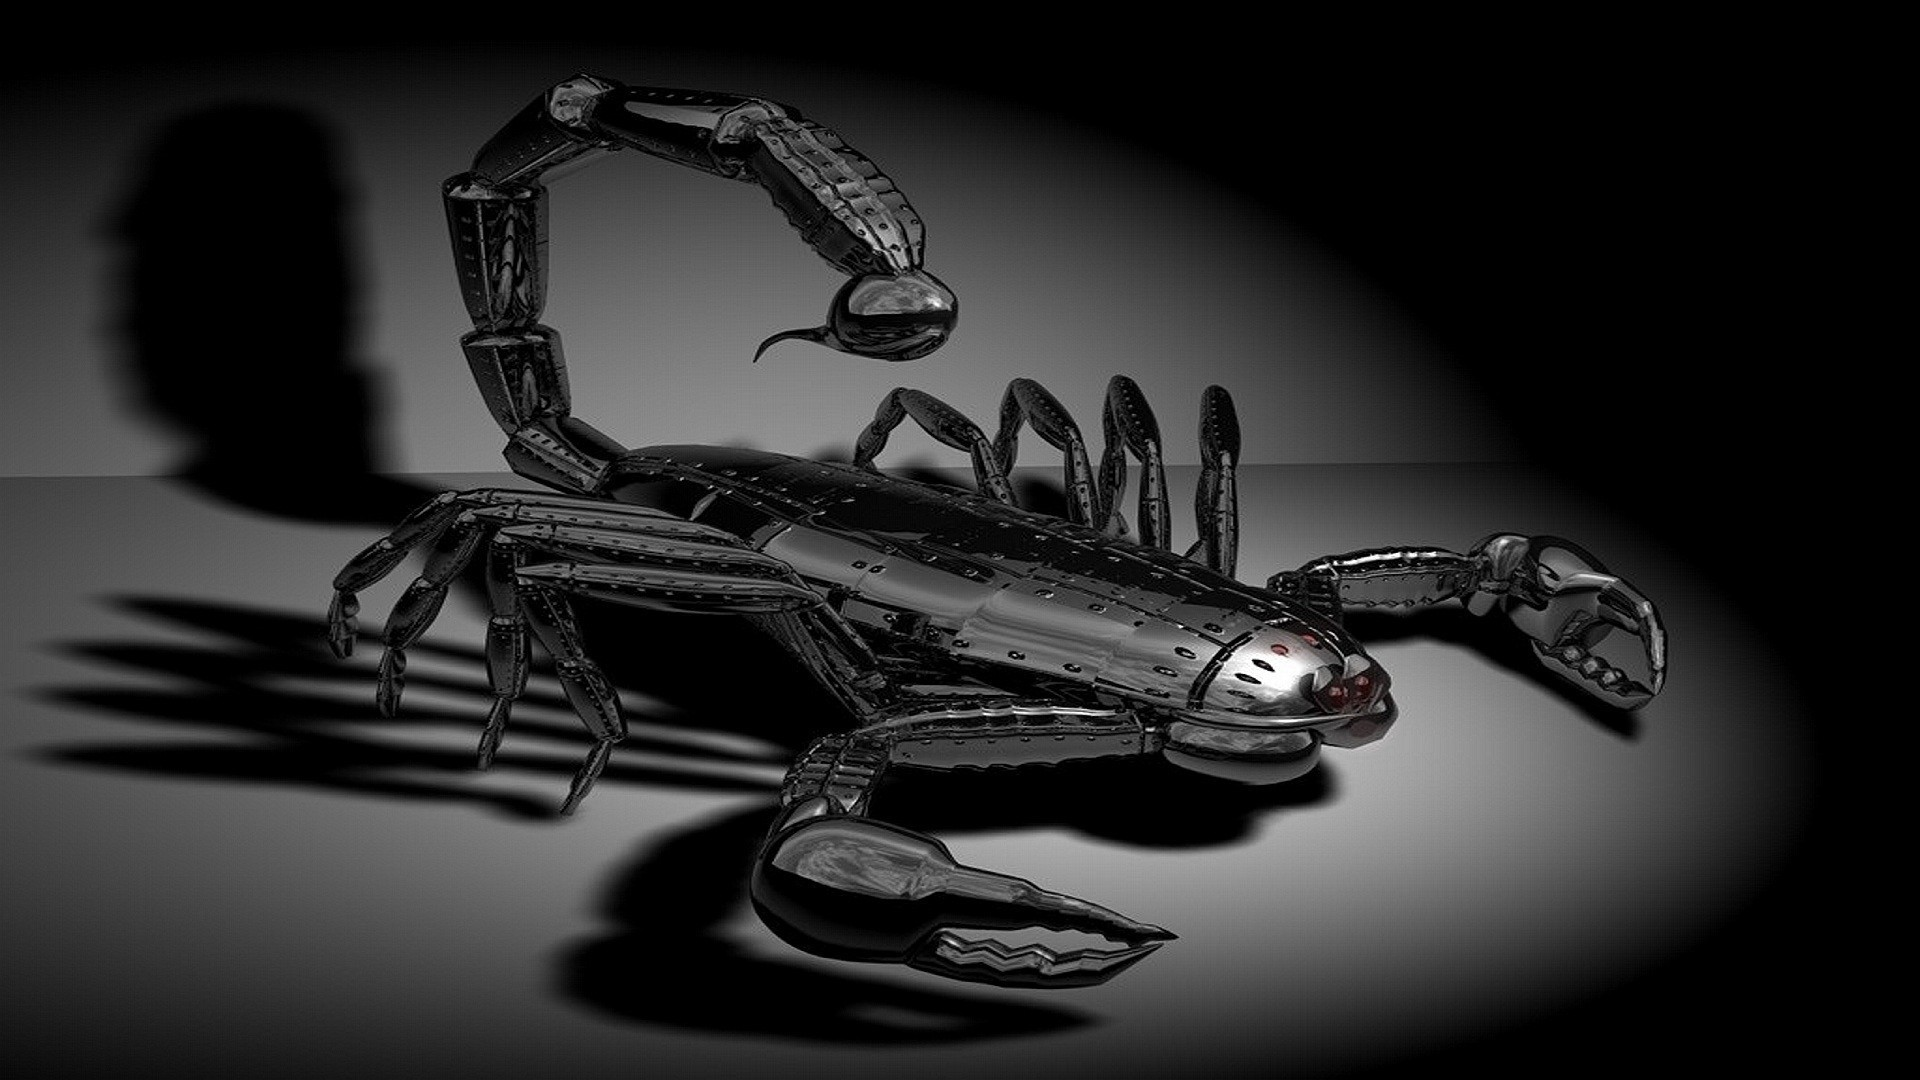 Res: 1920x1080, HD Scorpion Images.